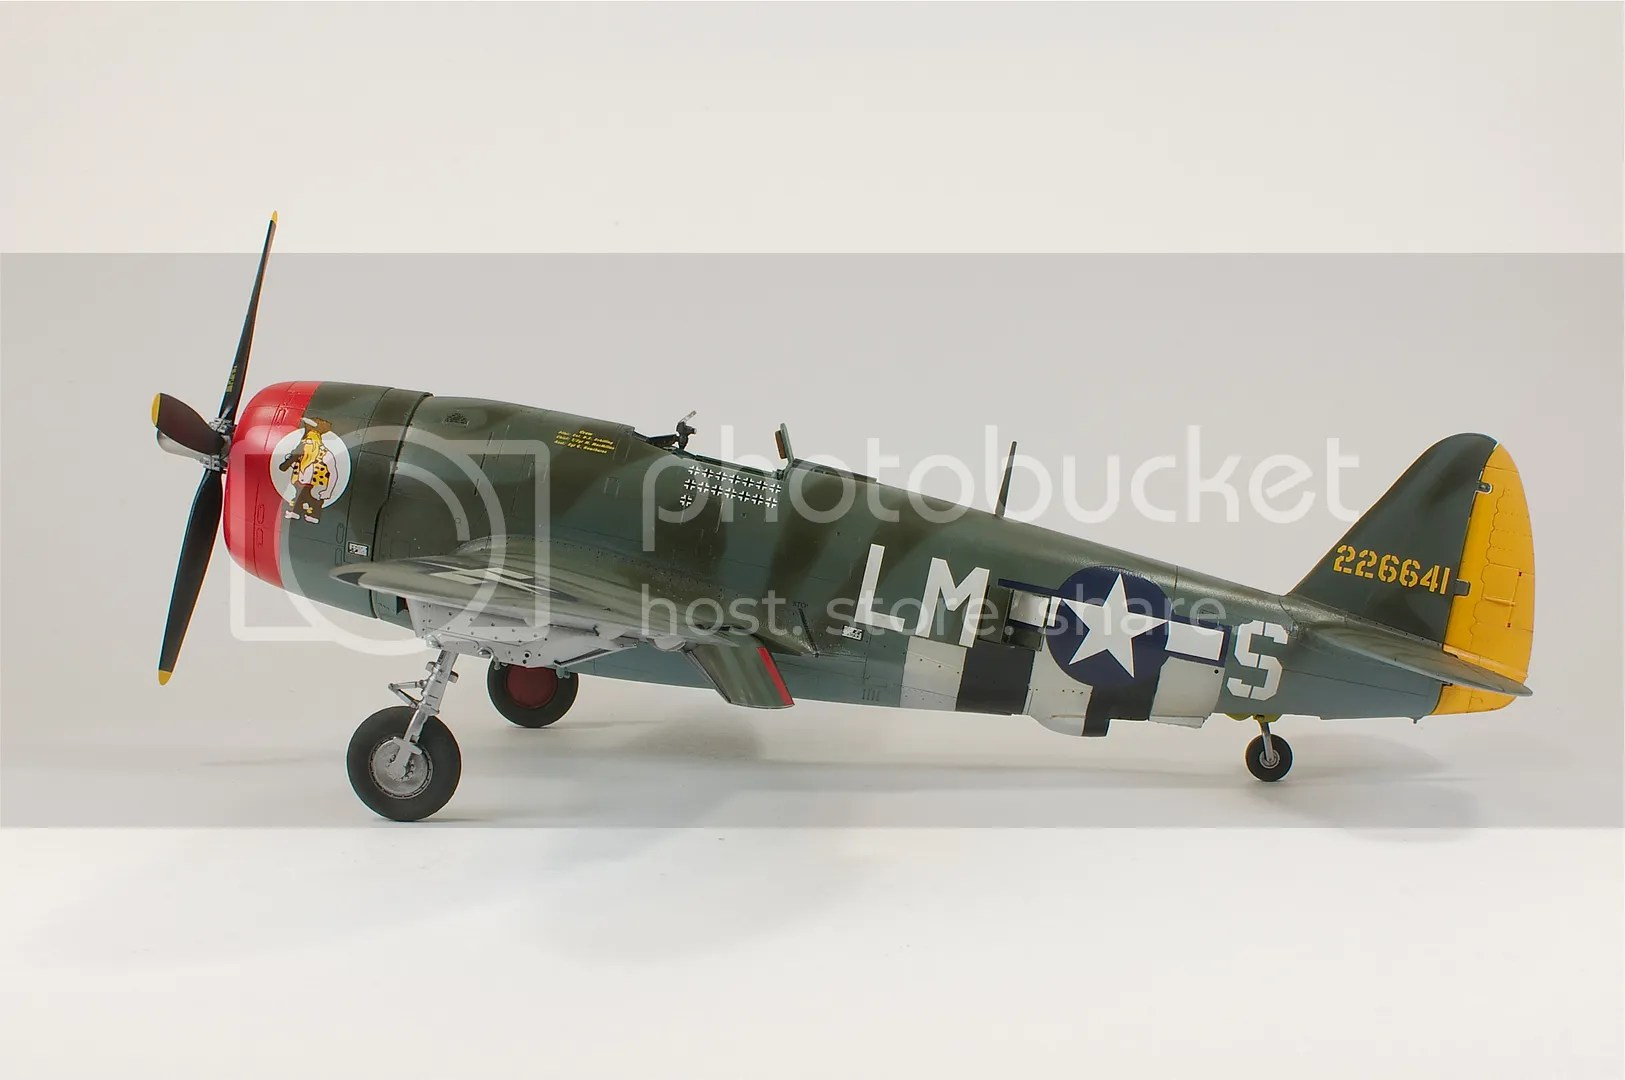 2011,1/48,Hairless Joe,January,P-47D Thunderbolt,Nikon D300s,Tamiya,scale models